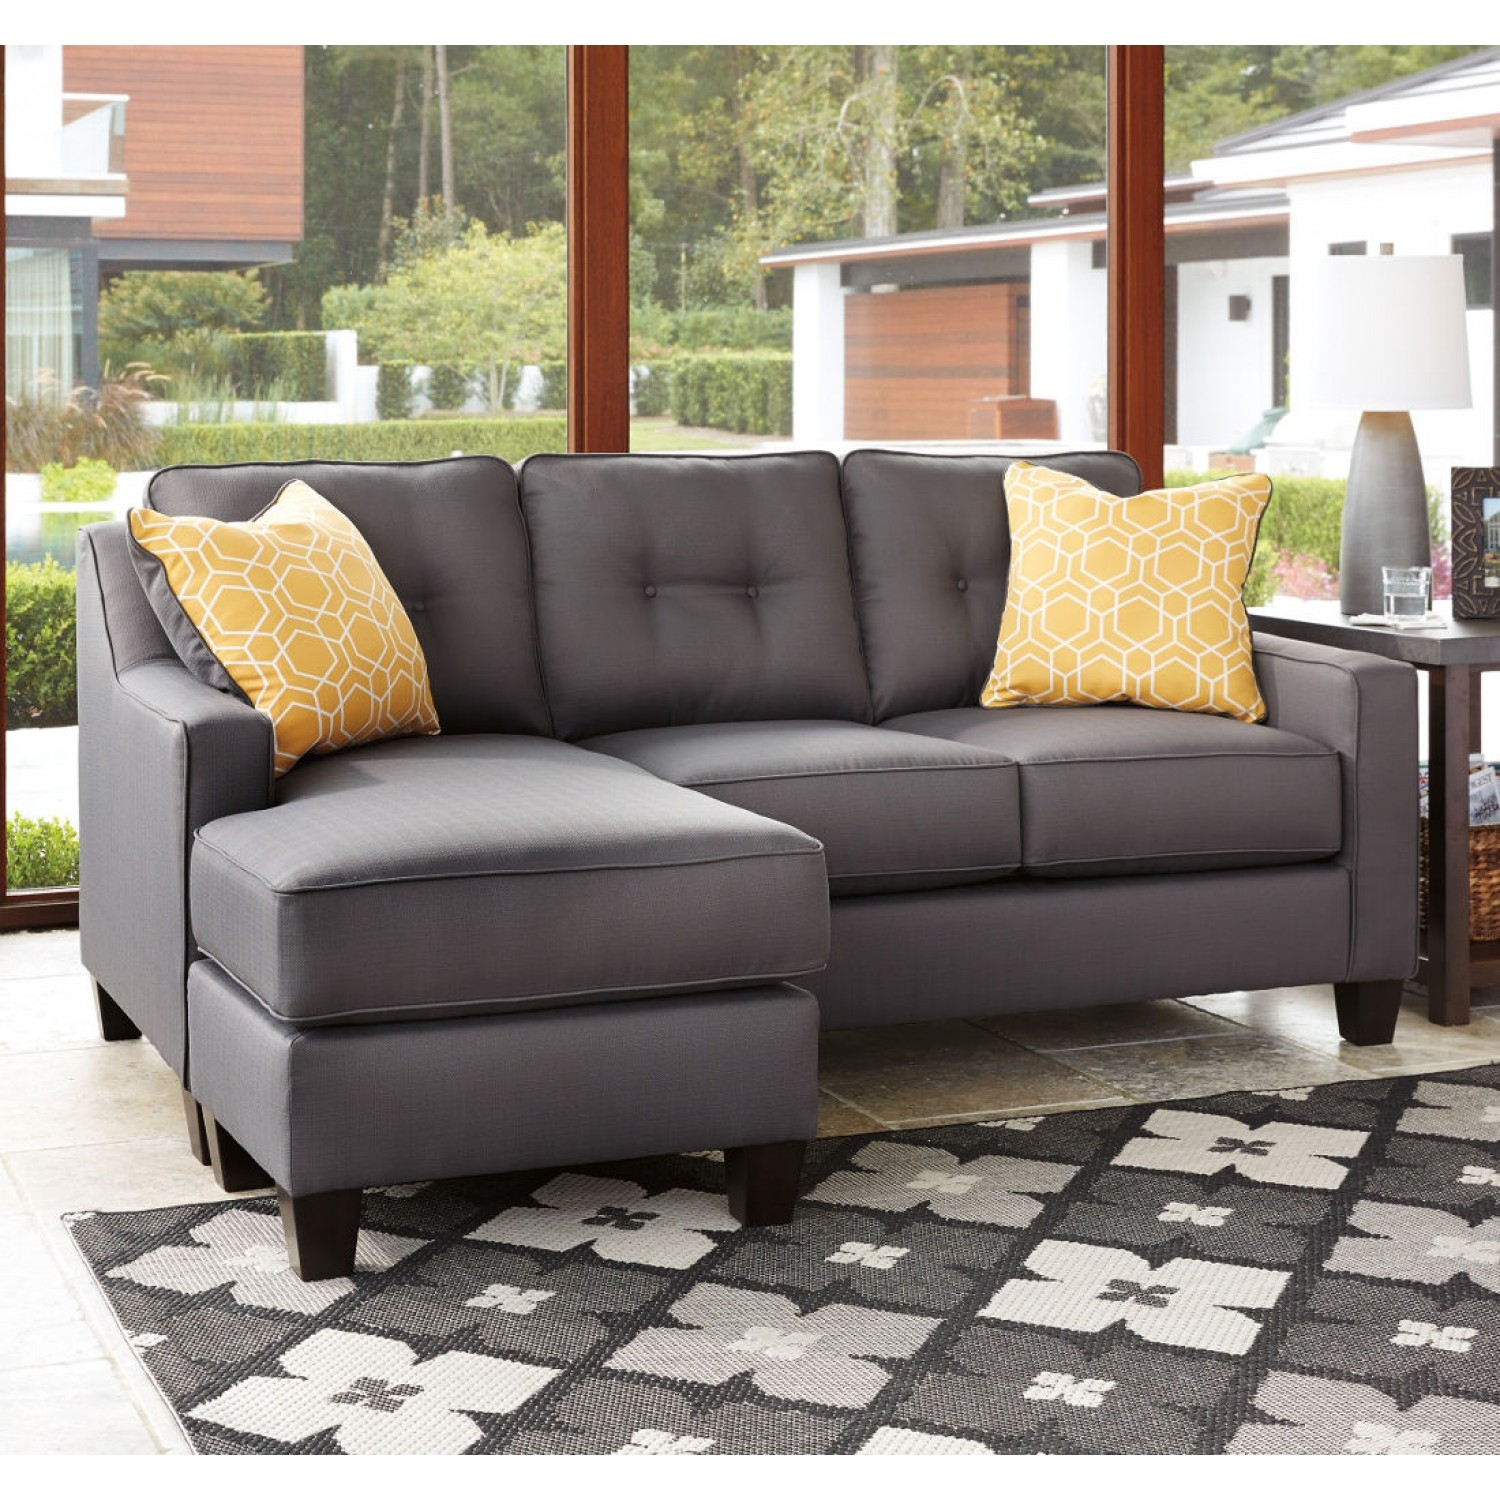 Ashley Furniture Aldie Nuvella Sofa Chaise In Gray Local Pertaining To Ashley Furniture Gray Sofa (Image 2 of 15)